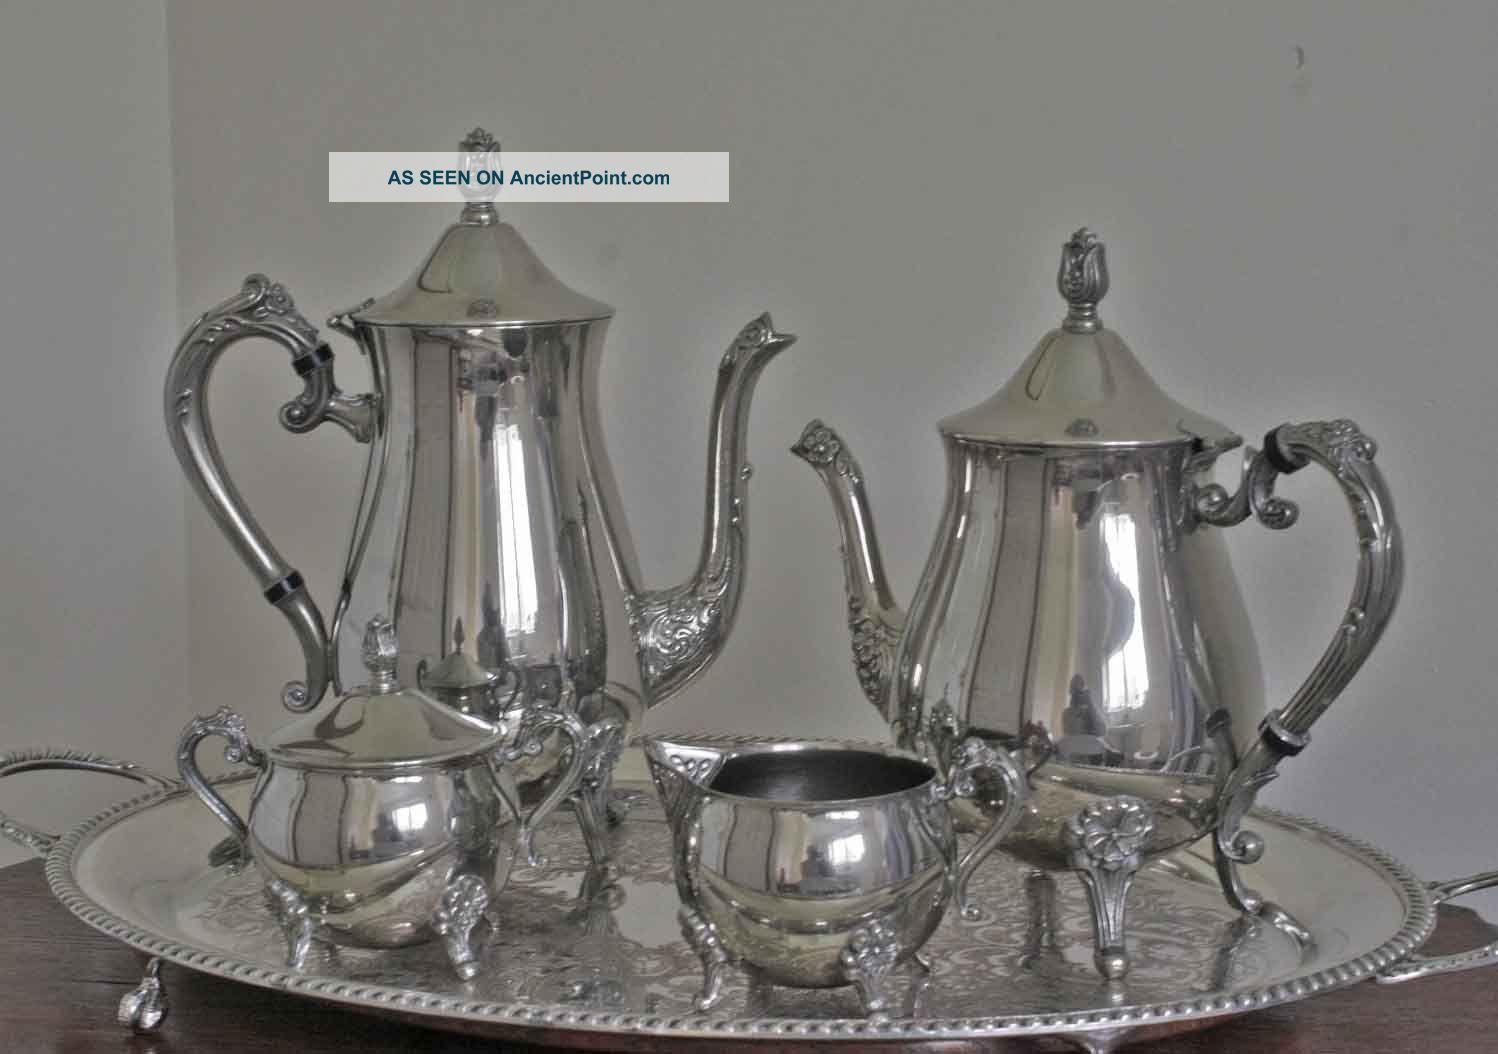 & Vintage Silver Plated Tea And Coffee Set. Decorative And Pristine.